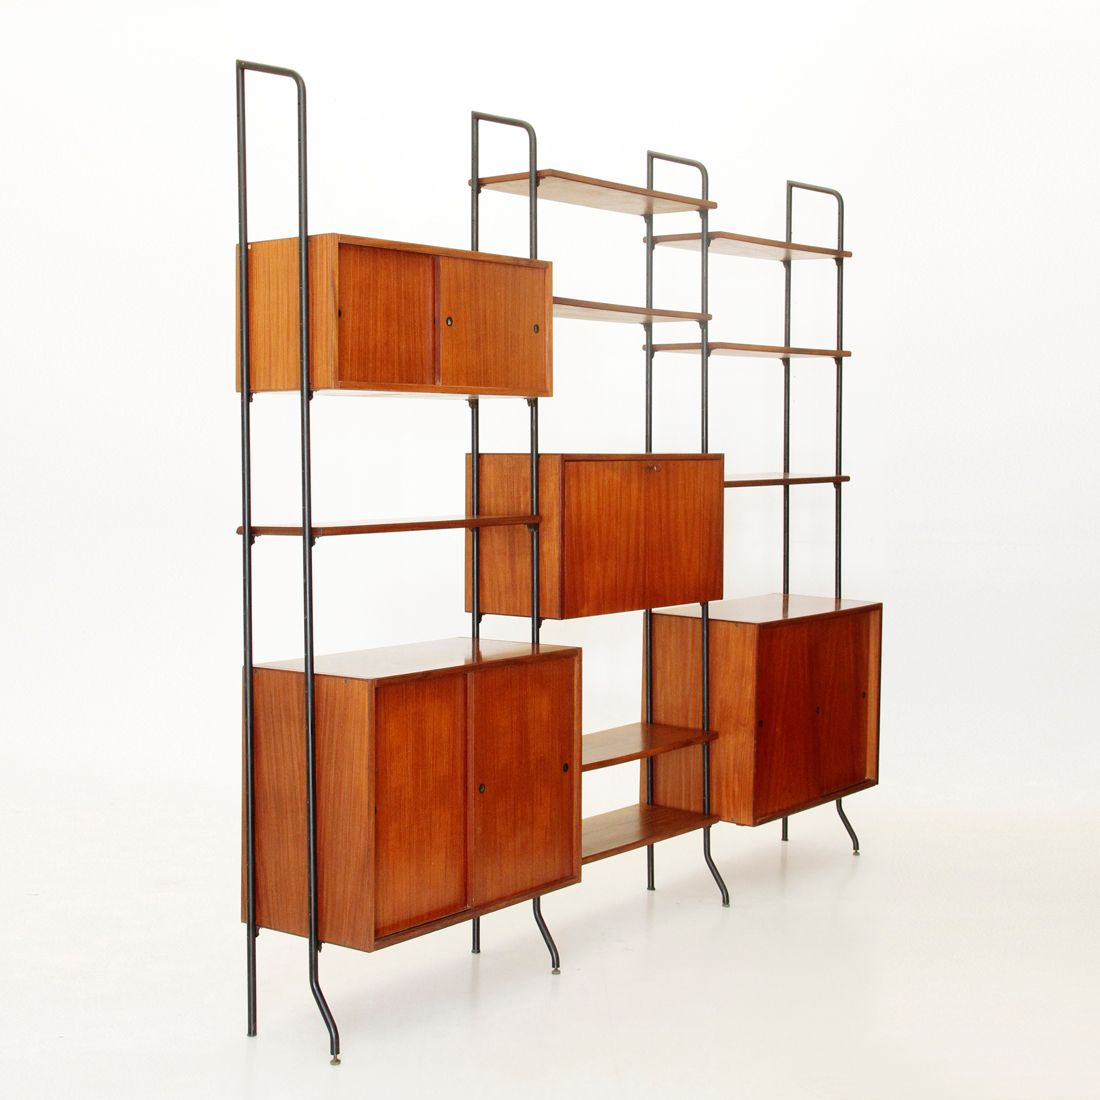 biblioth que vintage en fer et teck italie 1960s en vente sur pamono. Black Bedroom Furniture Sets. Home Design Ideas